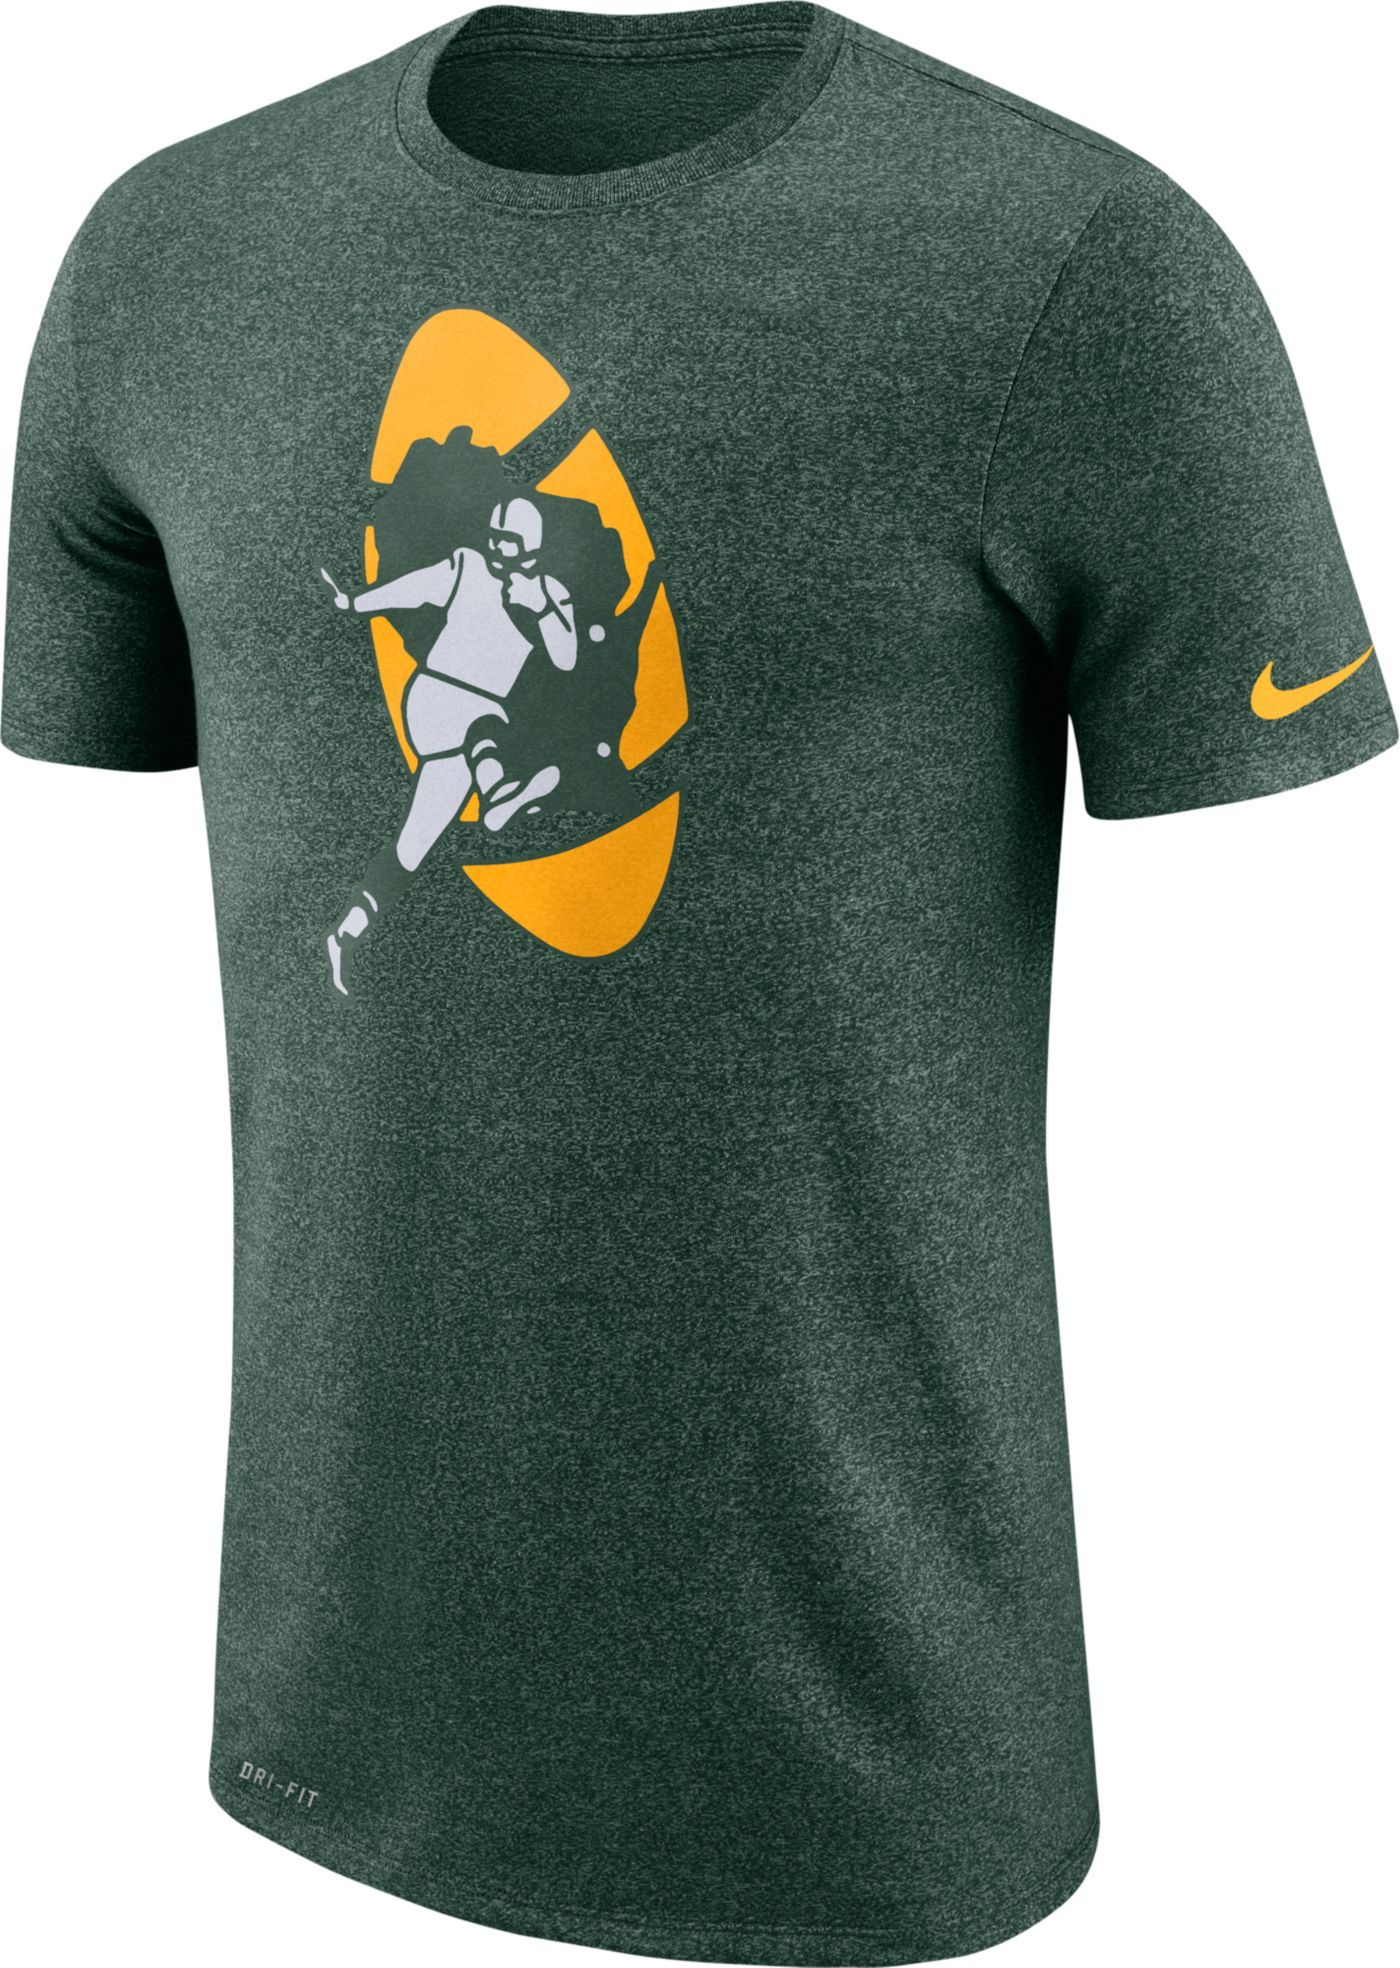 Nike Men's Green Bay Packers Marled Historic Performance Green T-Shirt